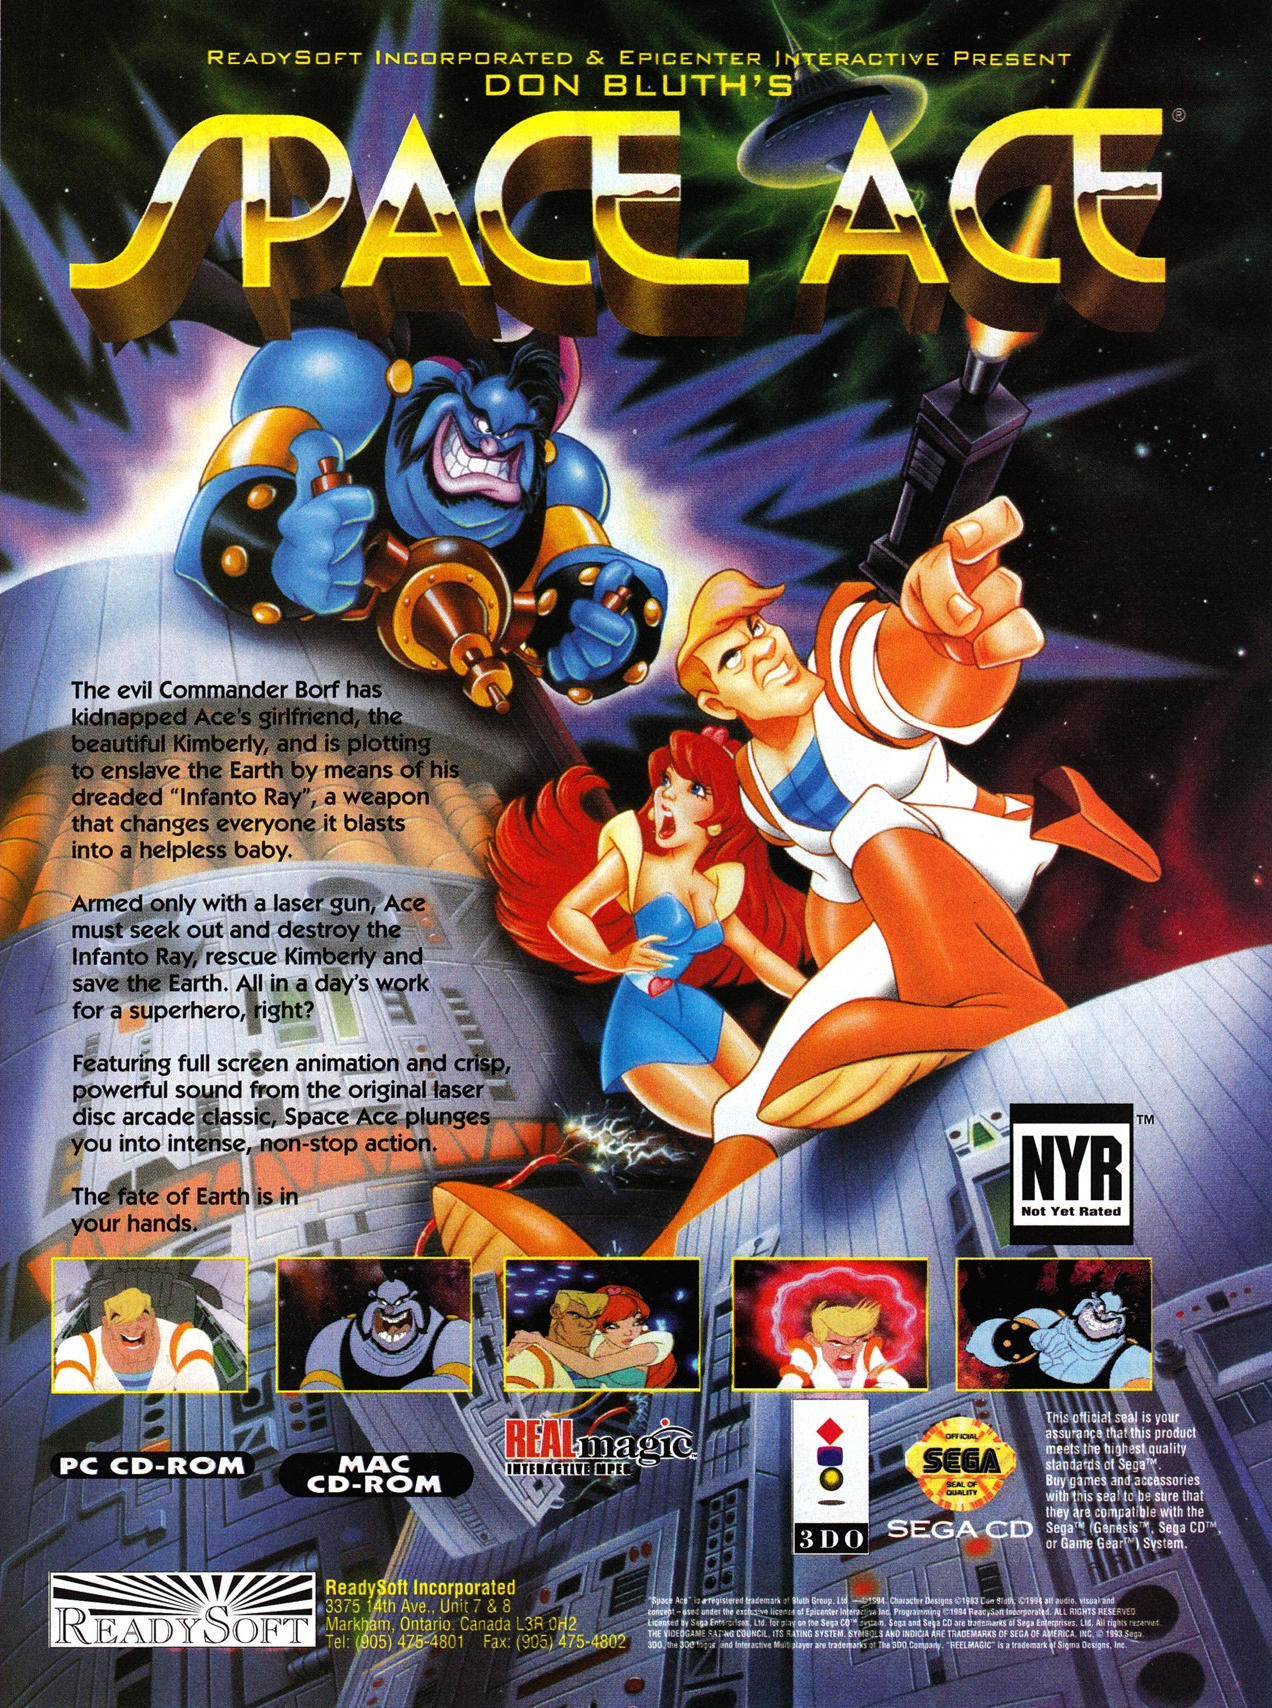 Space Ace (1994) promotional art - MobyGames